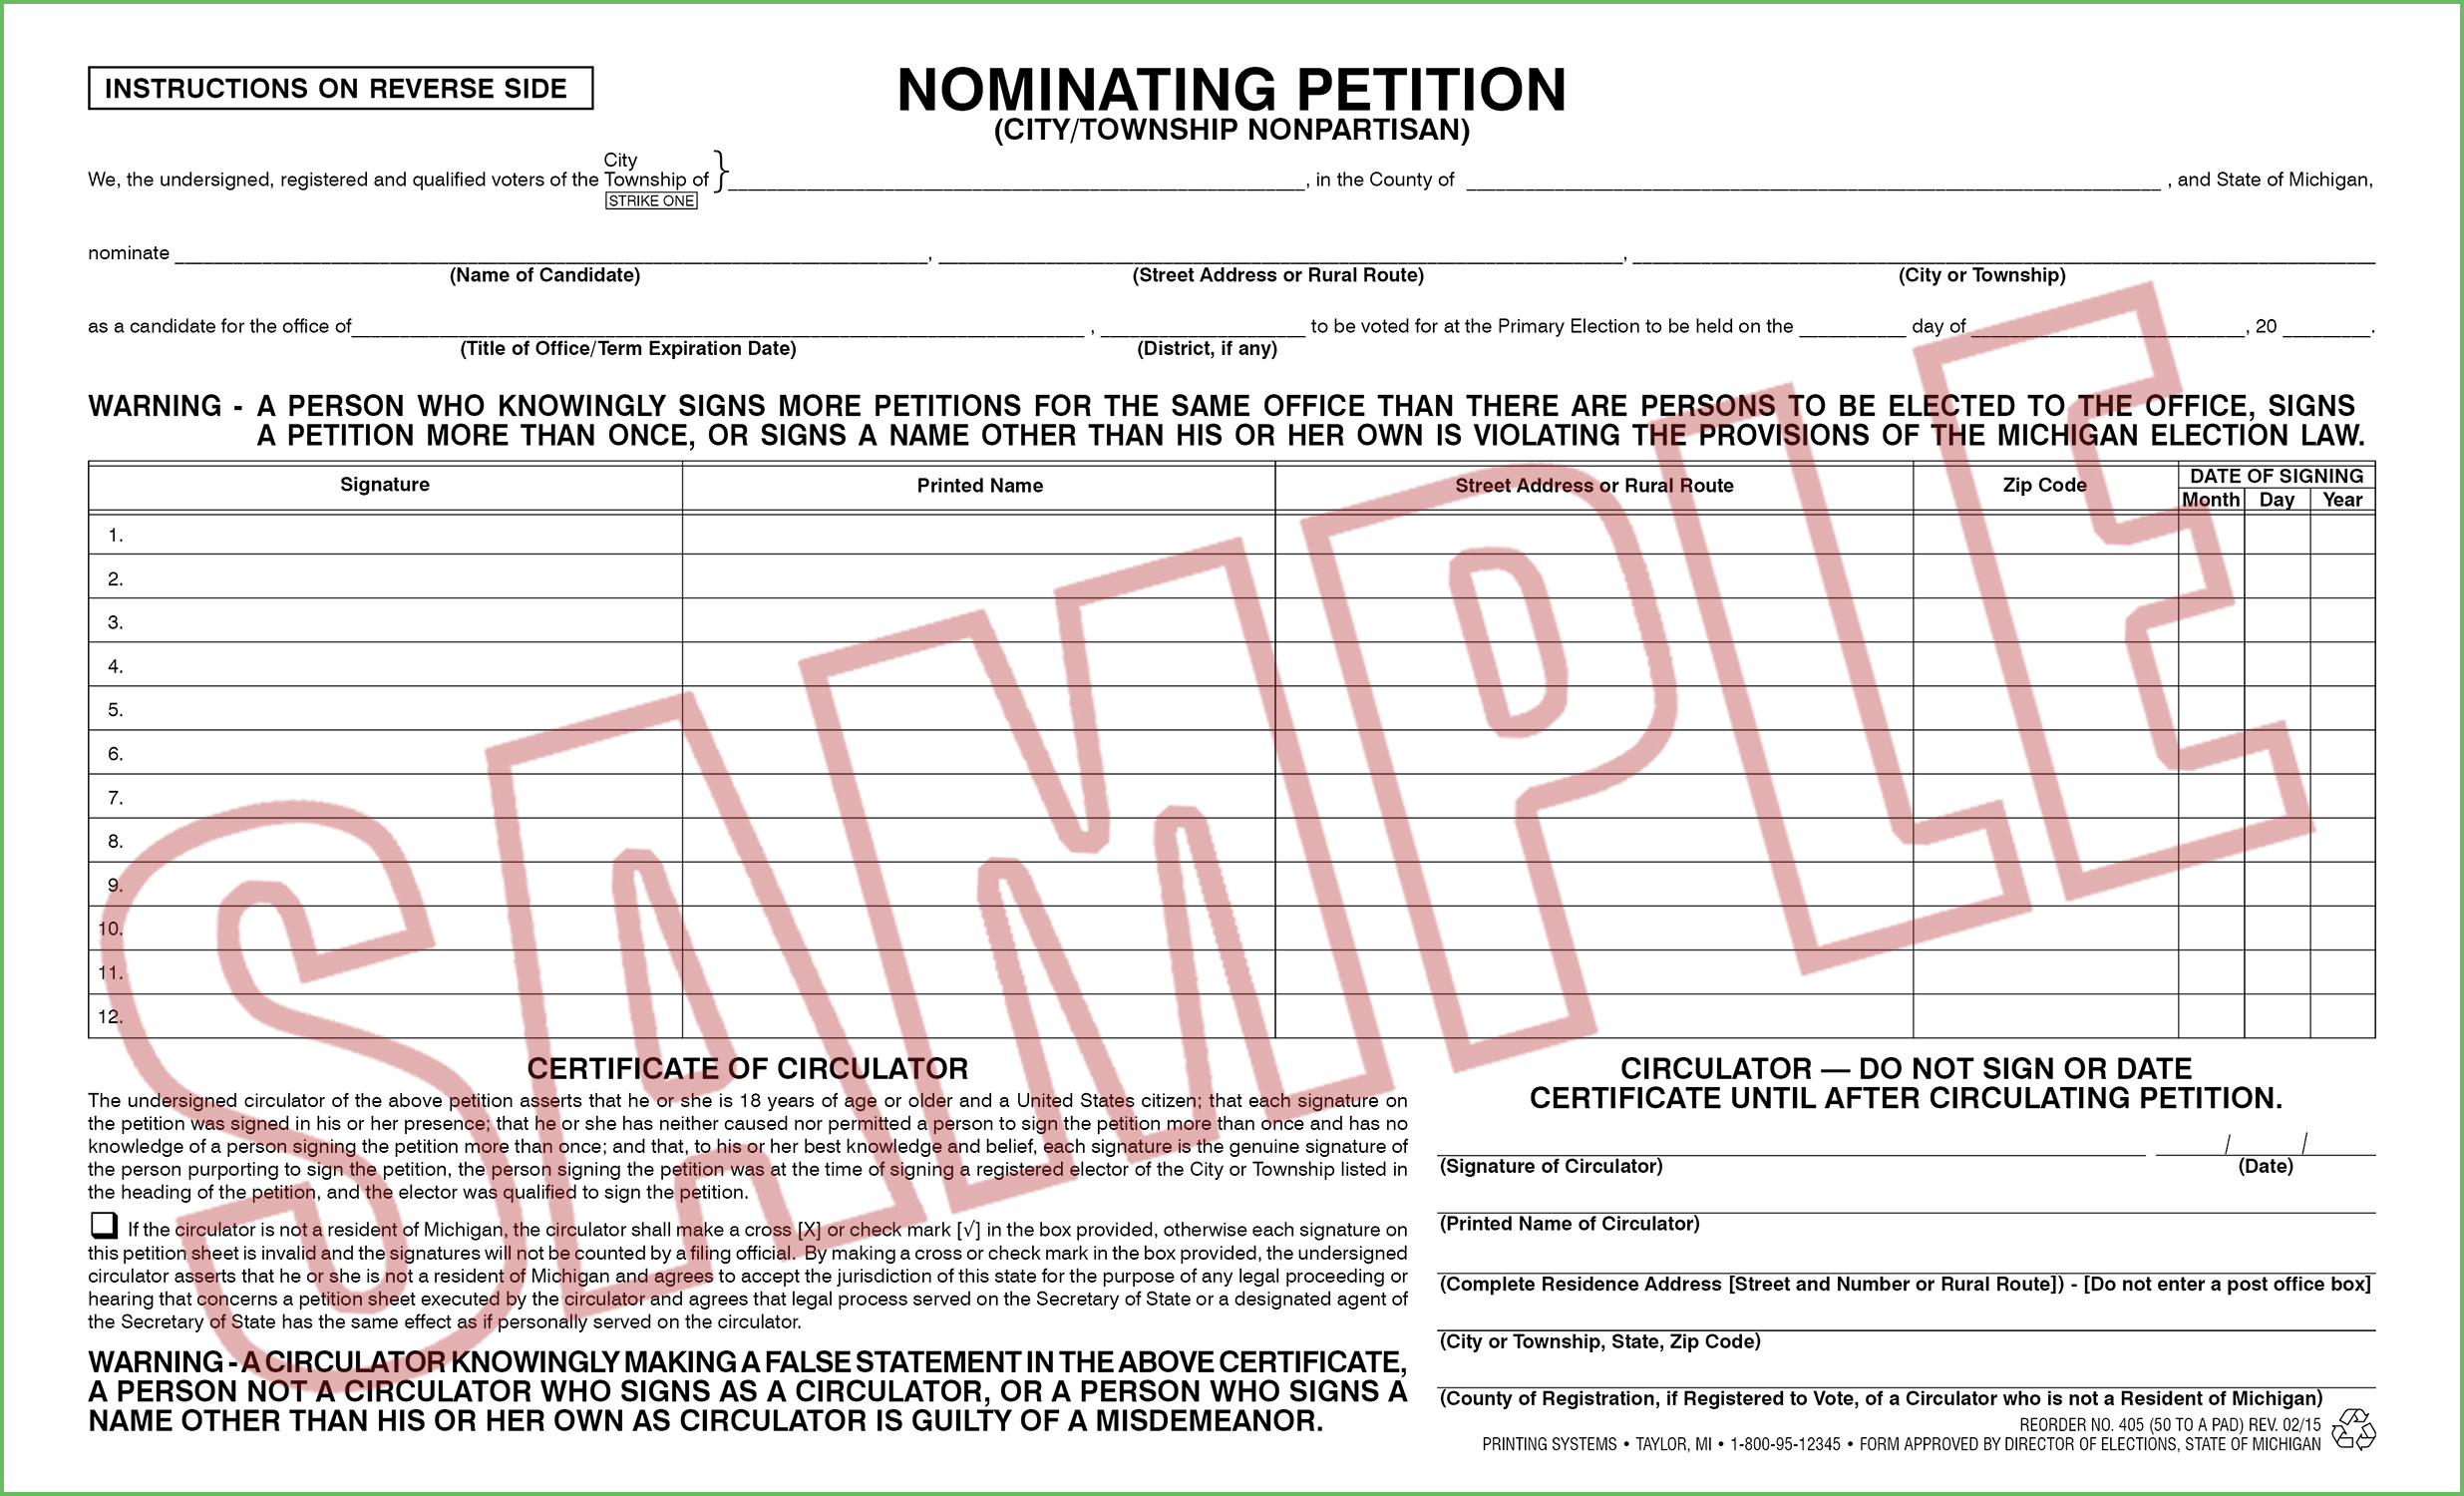 405 Nominating Petition (Ci/Twp) Nonpartisan (50 per pad) 02/15